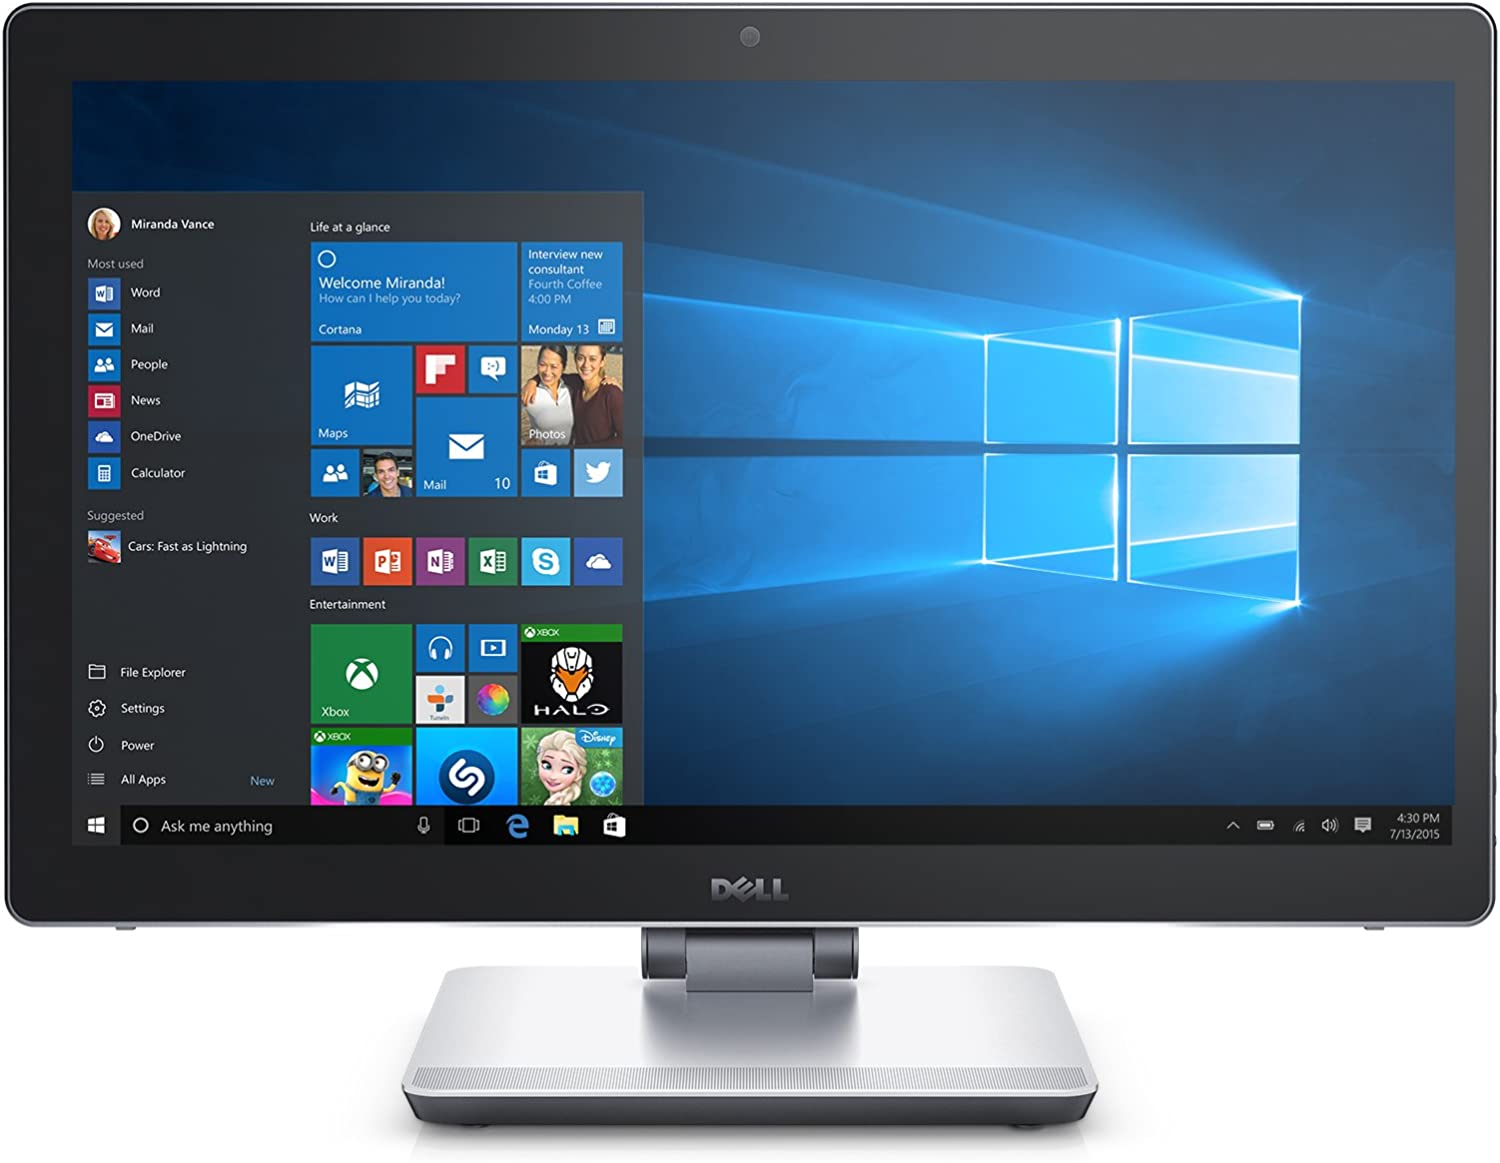 Dell Inspiron i7459-7070BLK 23.8'' FHD Touchscreen All-in-One (6th Generation Intel Core i7, 16 GB RAM, 1 TB HDD + 32 GB SSD)